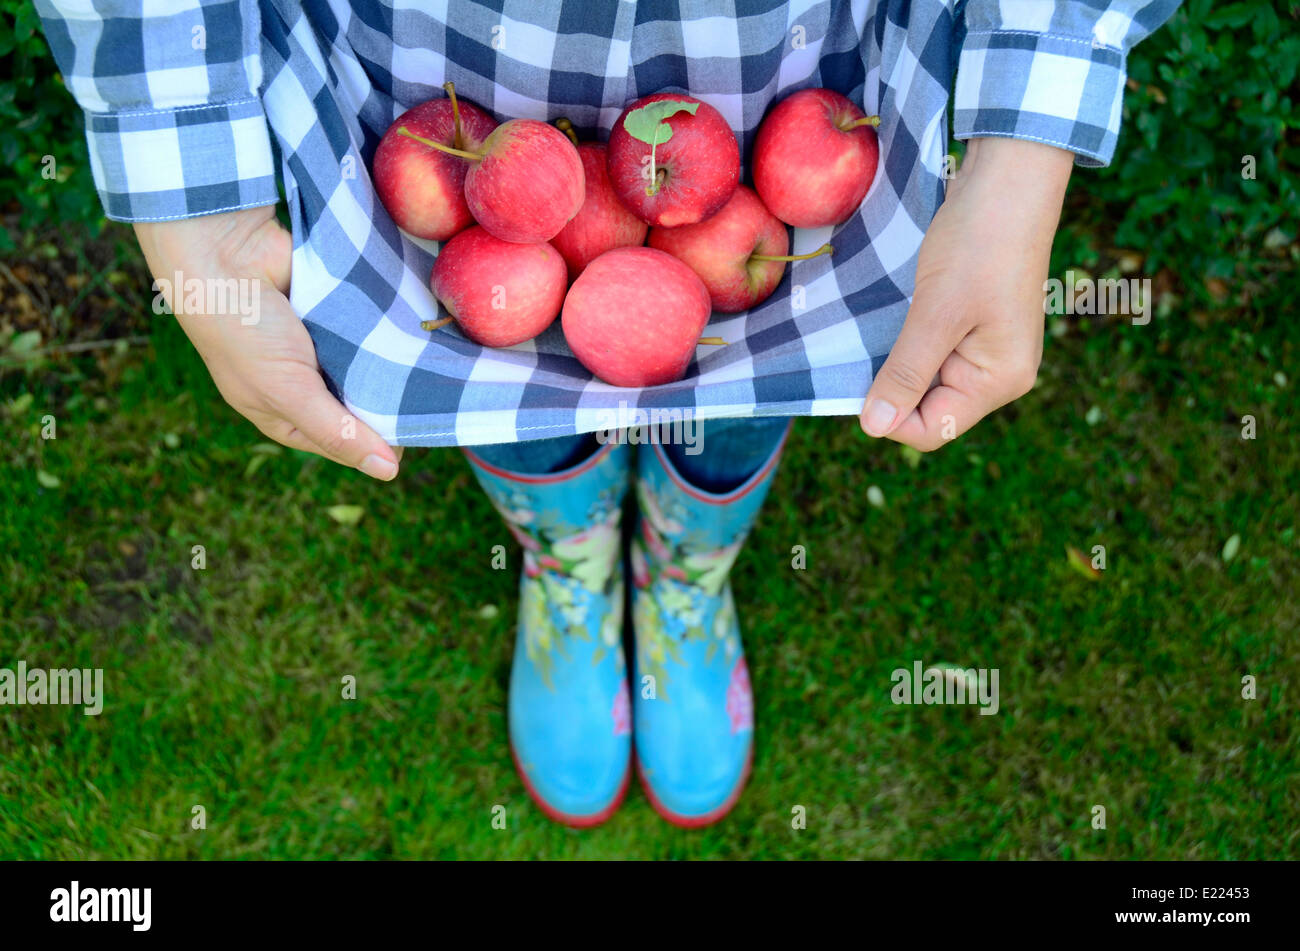 woman carrying red apples in apron Brandenburg Germany - Stock Image